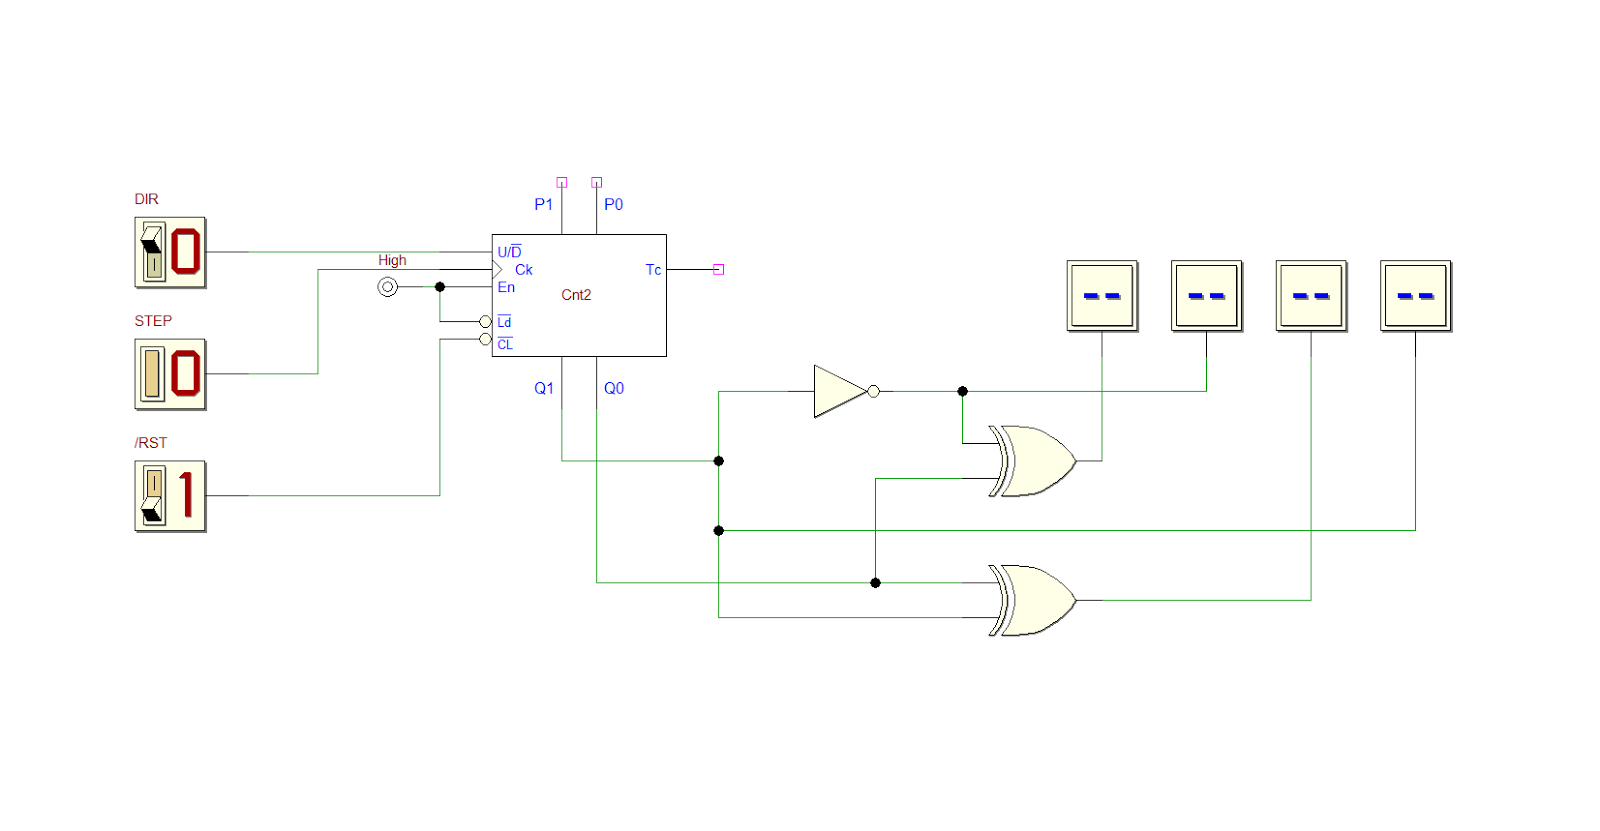 Computer Science Electronics And Mechanics Blog Circuit Diagram Not Gate On The Left A 2 Bit Up Down Counter Right Xor Gates